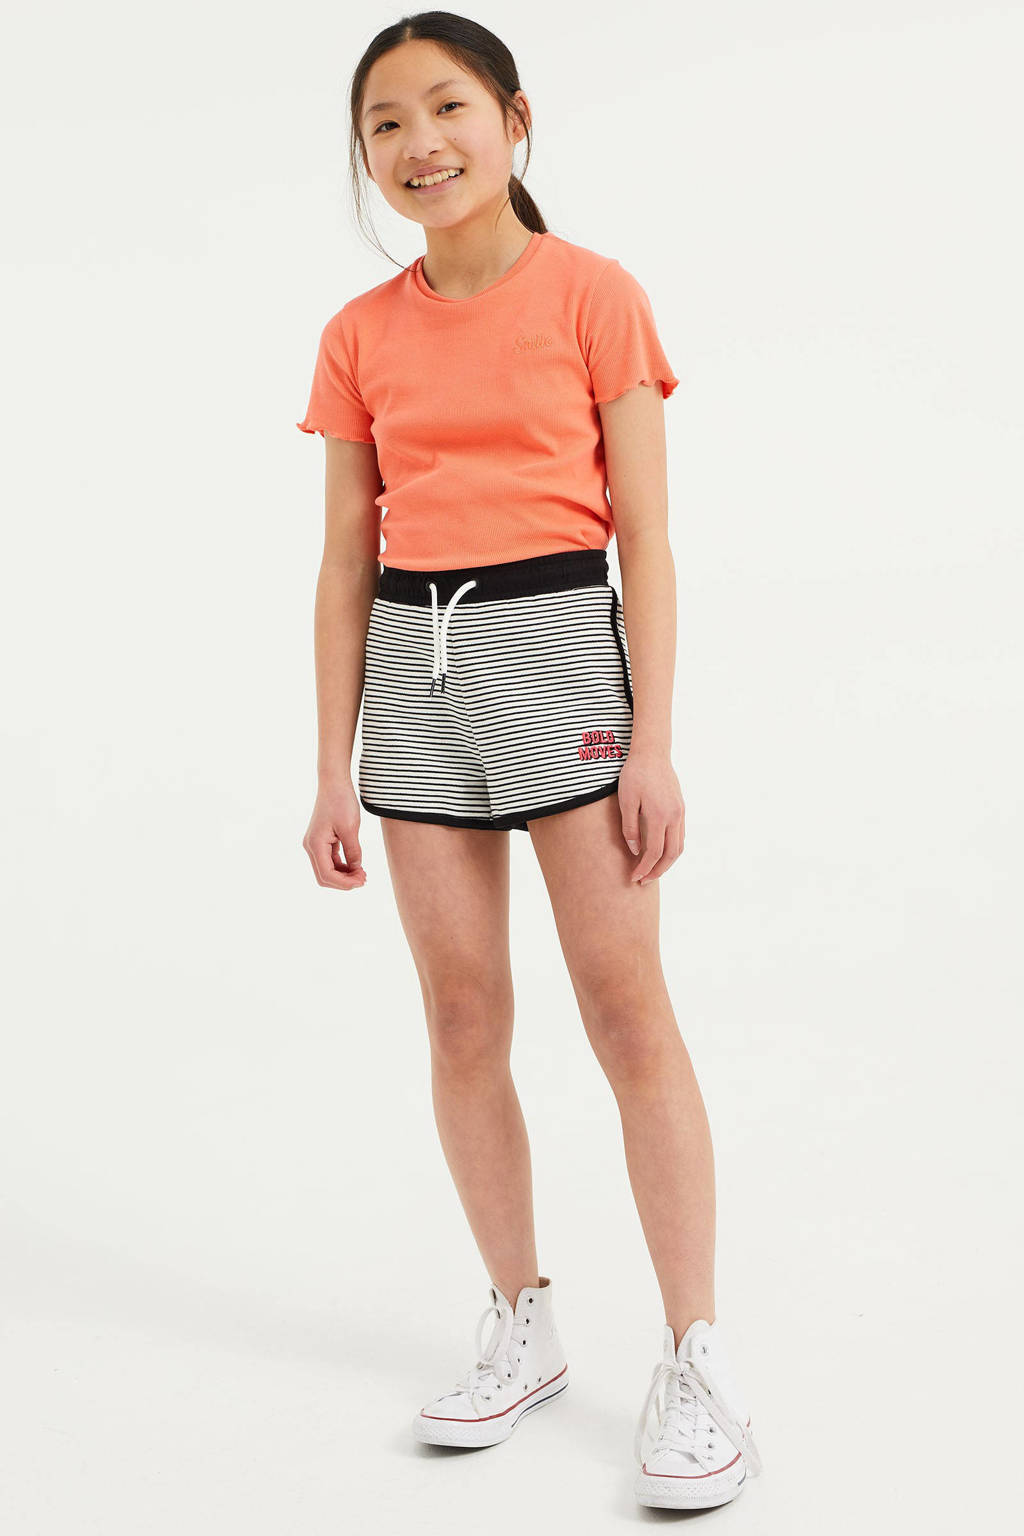 WE Fashion sweatshort - set van 2 zwart/wit/oranje, Zwart/wit/oranje